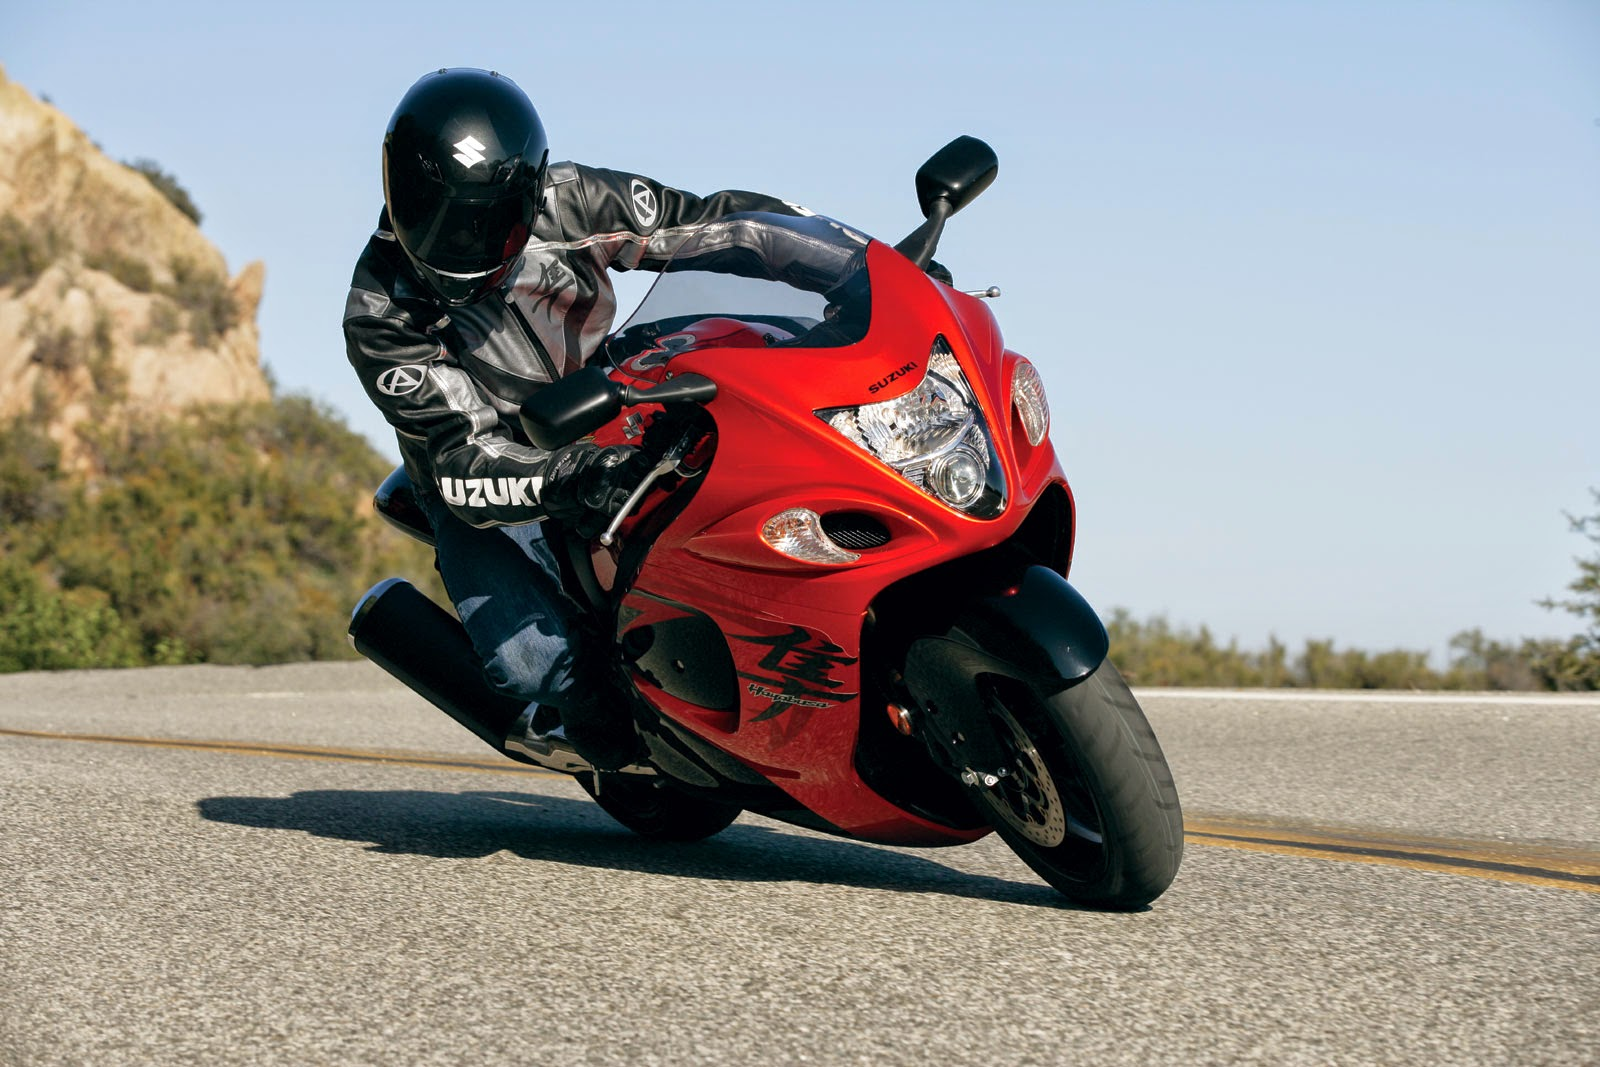 Suzuki Hayabusa Top 10 Hd Wallpapers Specification Price